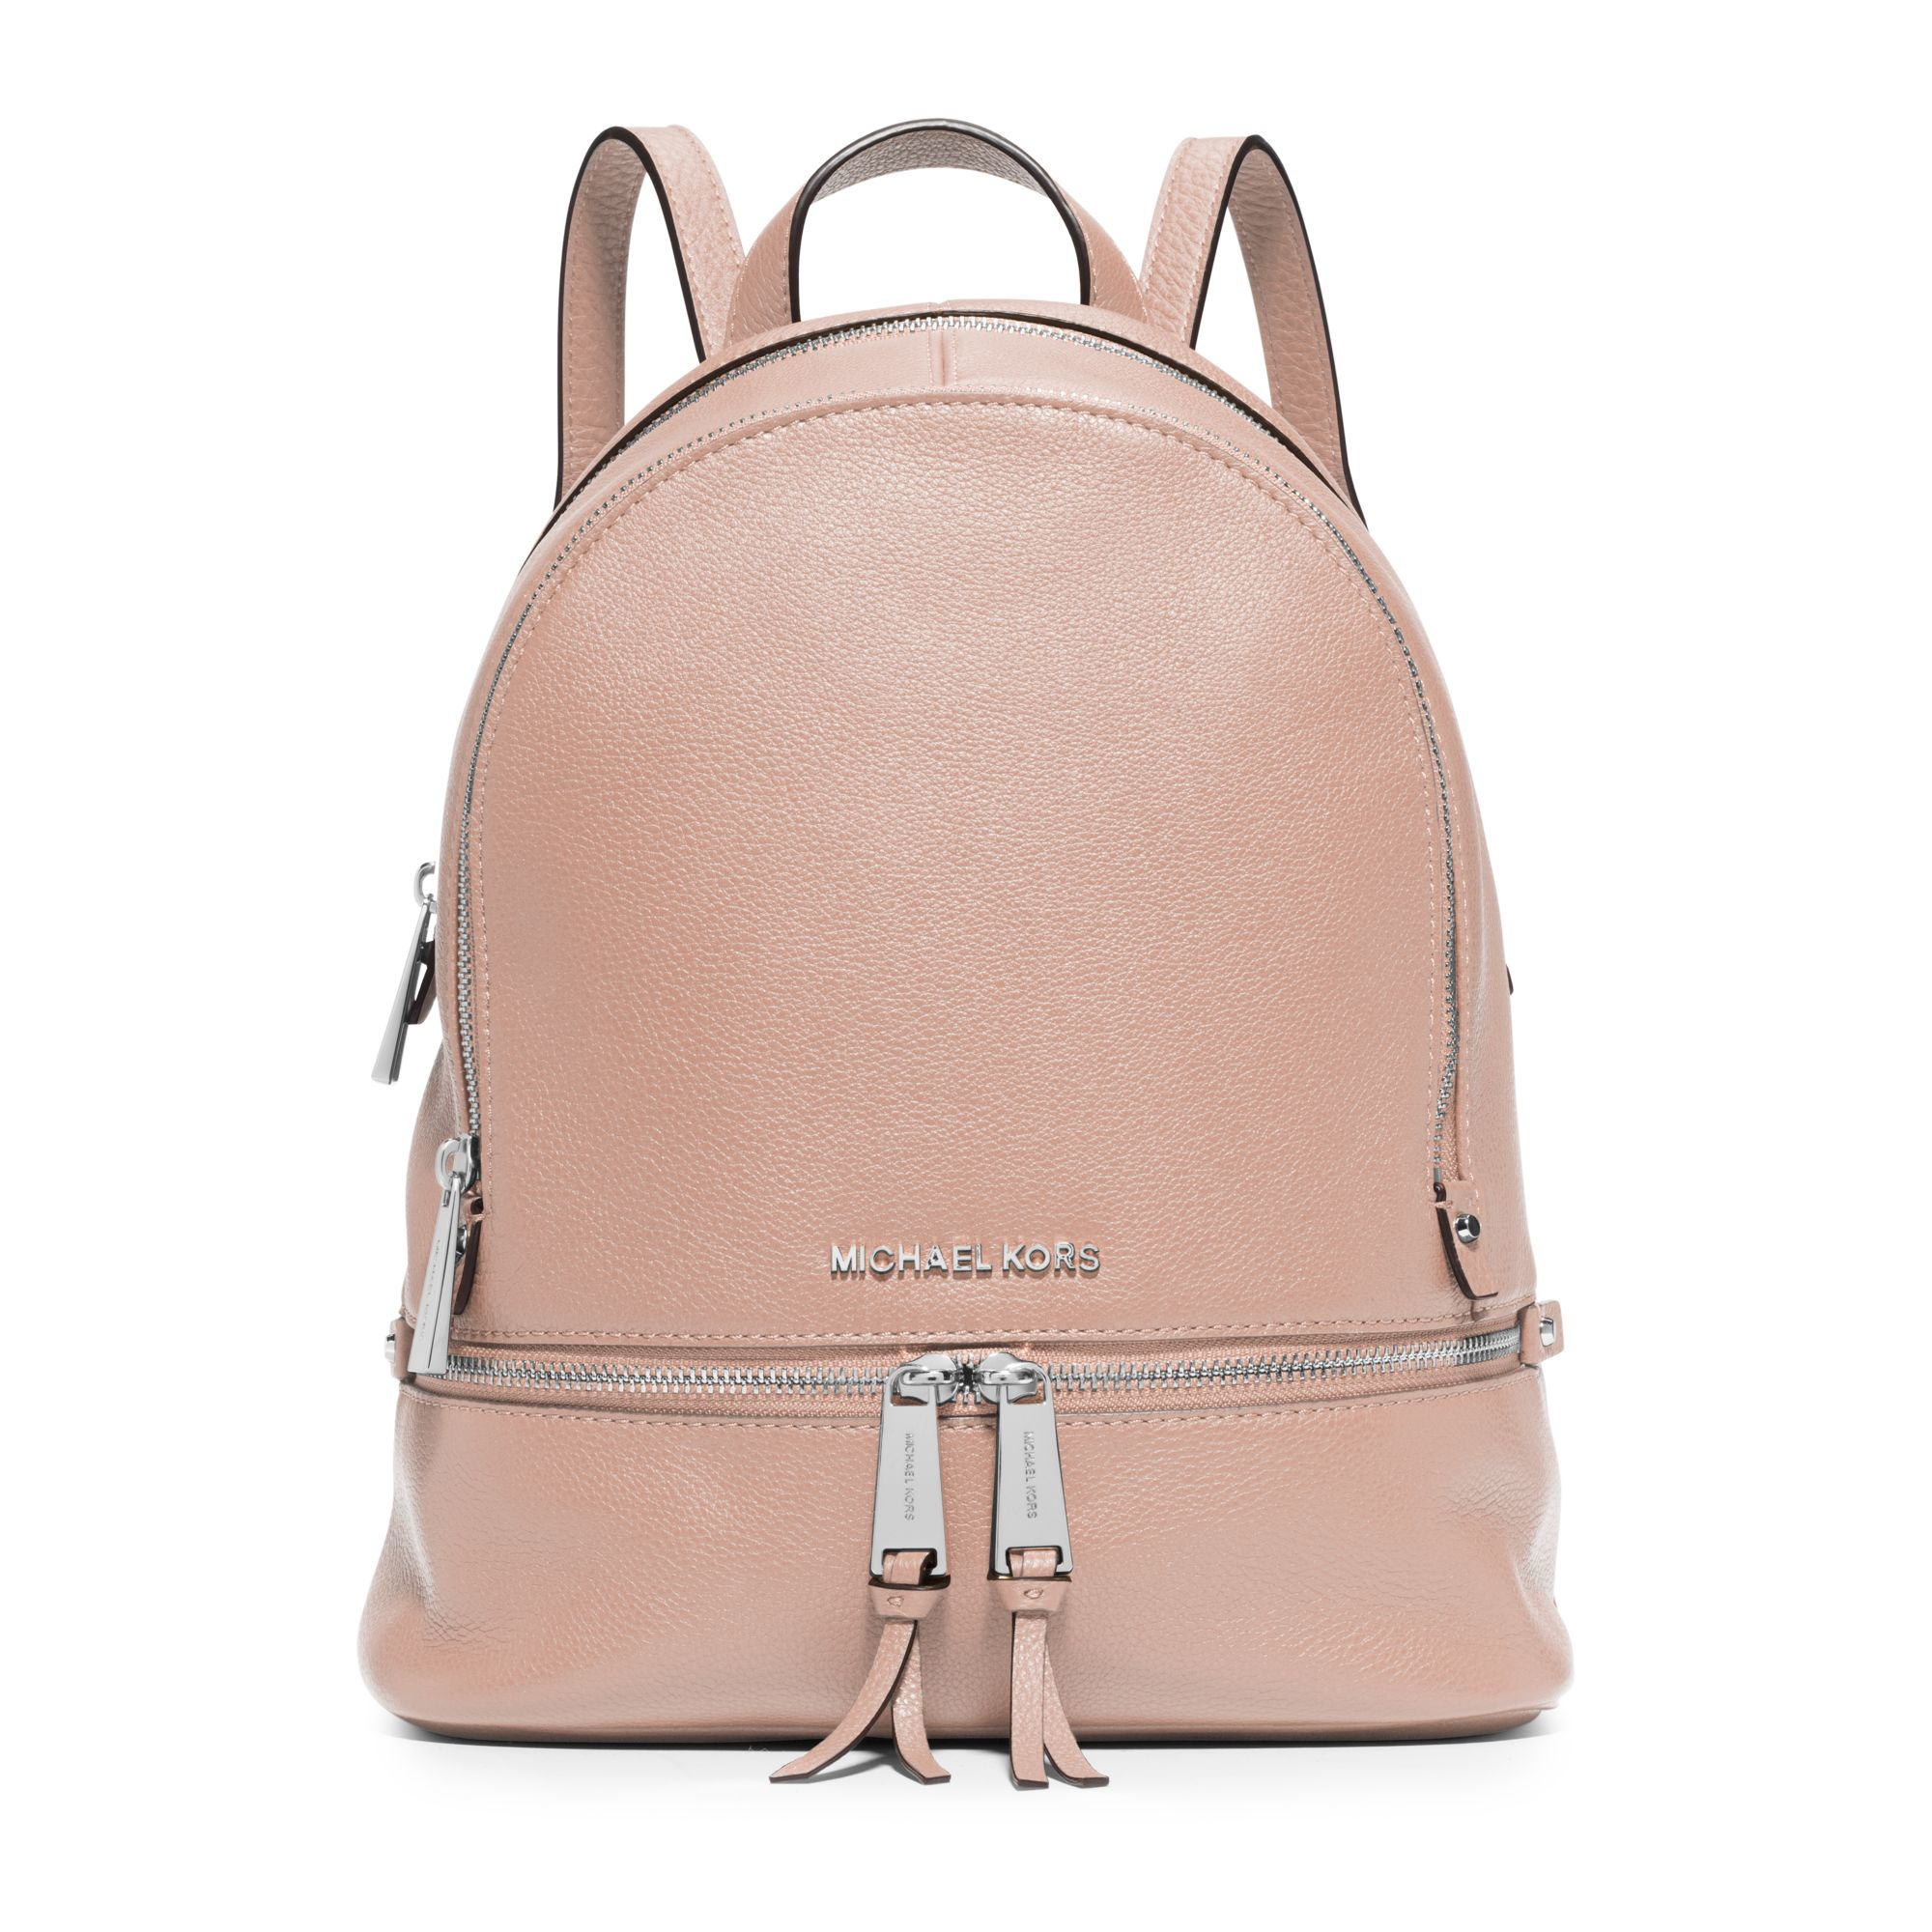 Michael kors Rhea Small Leather Backpack in Pink | Lyst